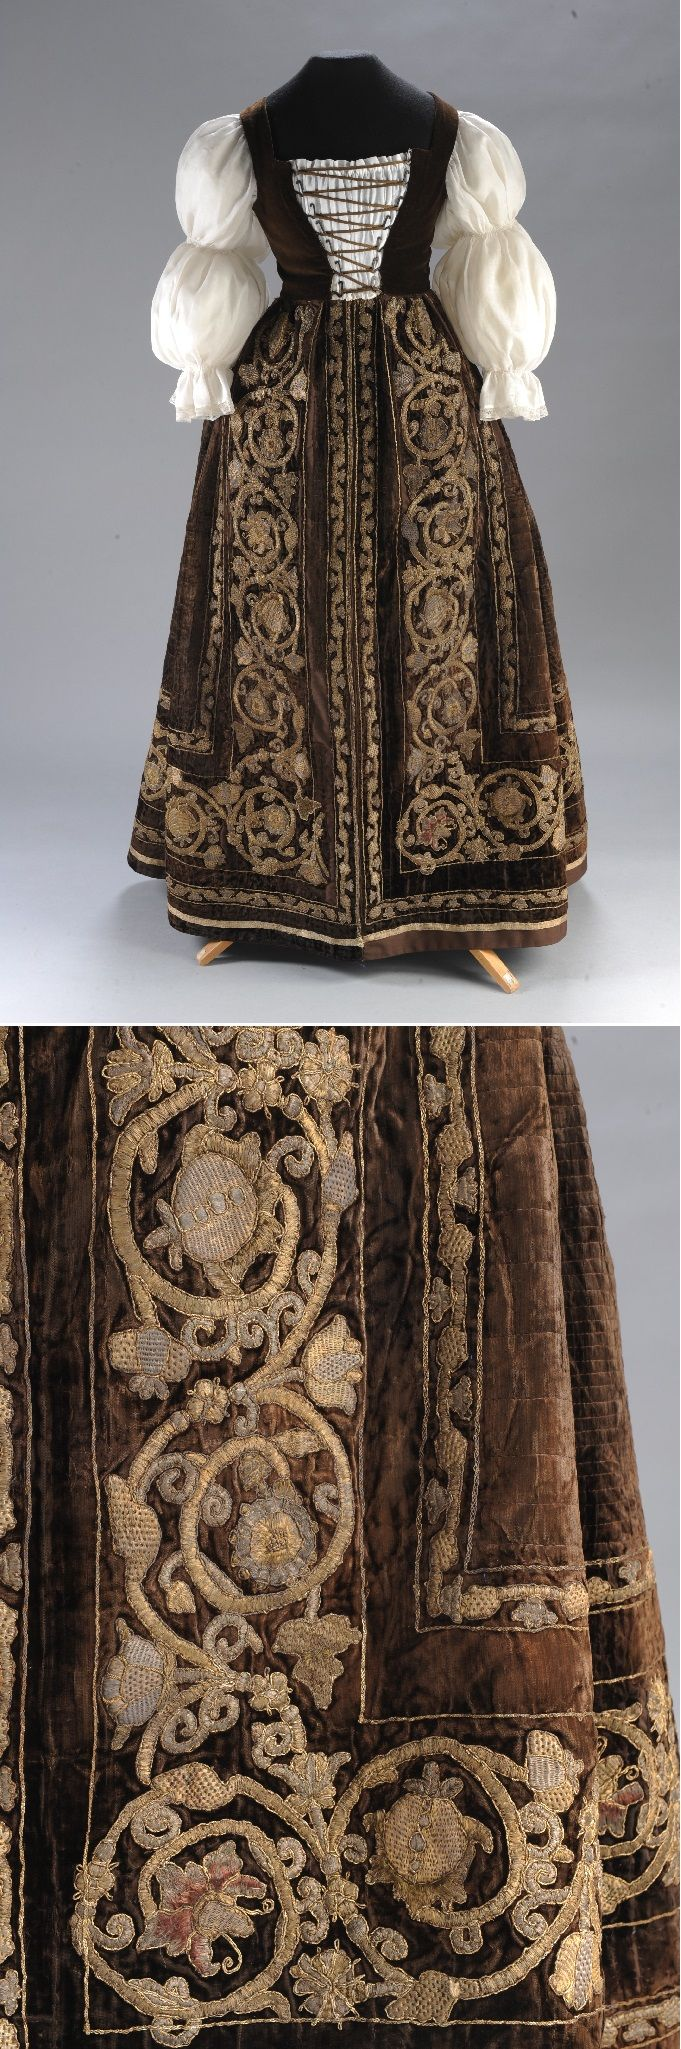 From the wardrobe of Orsolya Dersffy, ca. 1610, Hungary, Italy, cut-pile velvet, raised embroidery of gilt silver thread; embroidered in silk thread